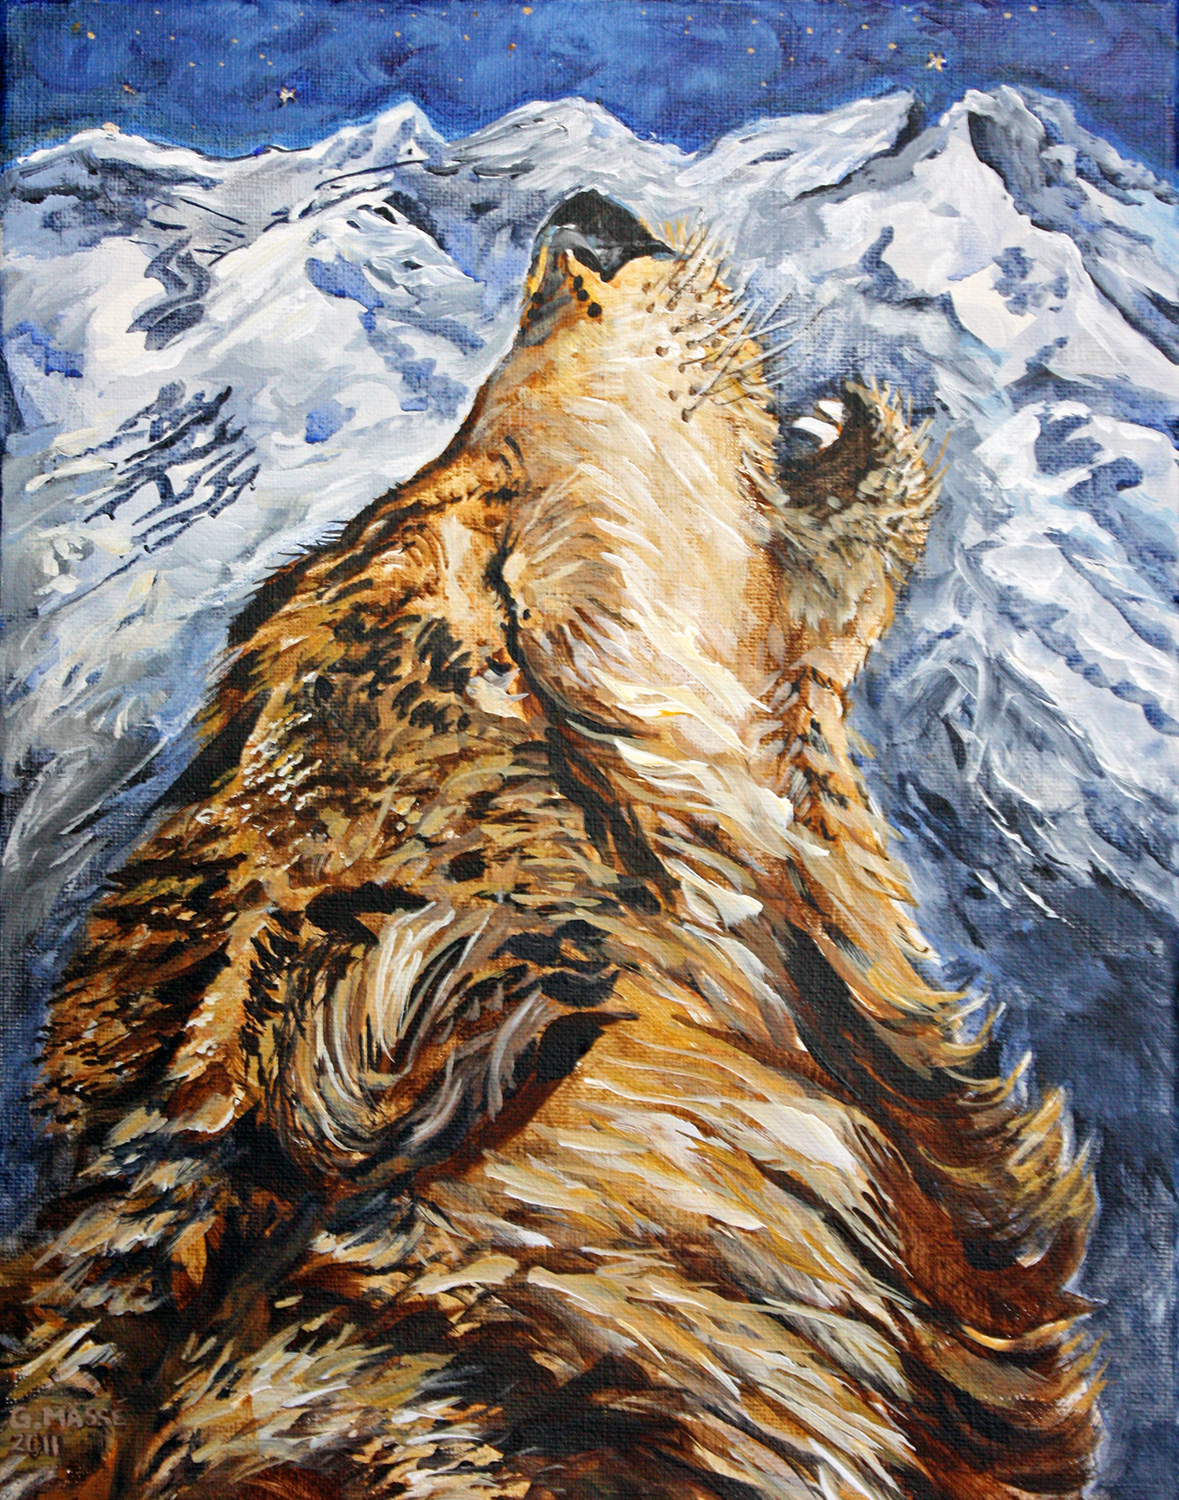 mountain howl 2011 acrylic 14x11